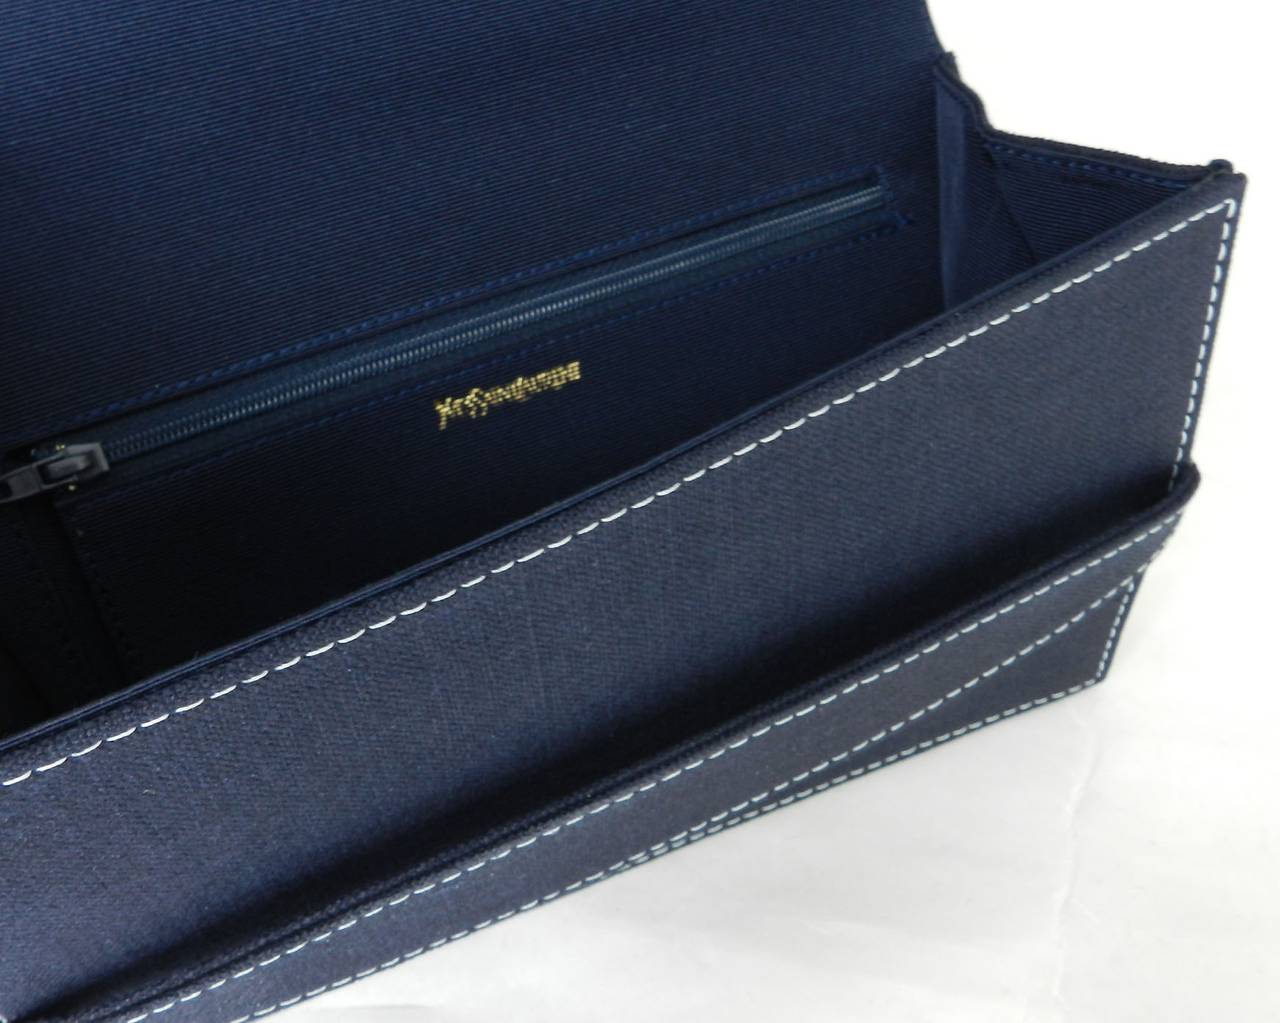 Yves Saint Laurent 1990\u0026#39;s Navy Cotton Envelope Clutch at 1stdibs